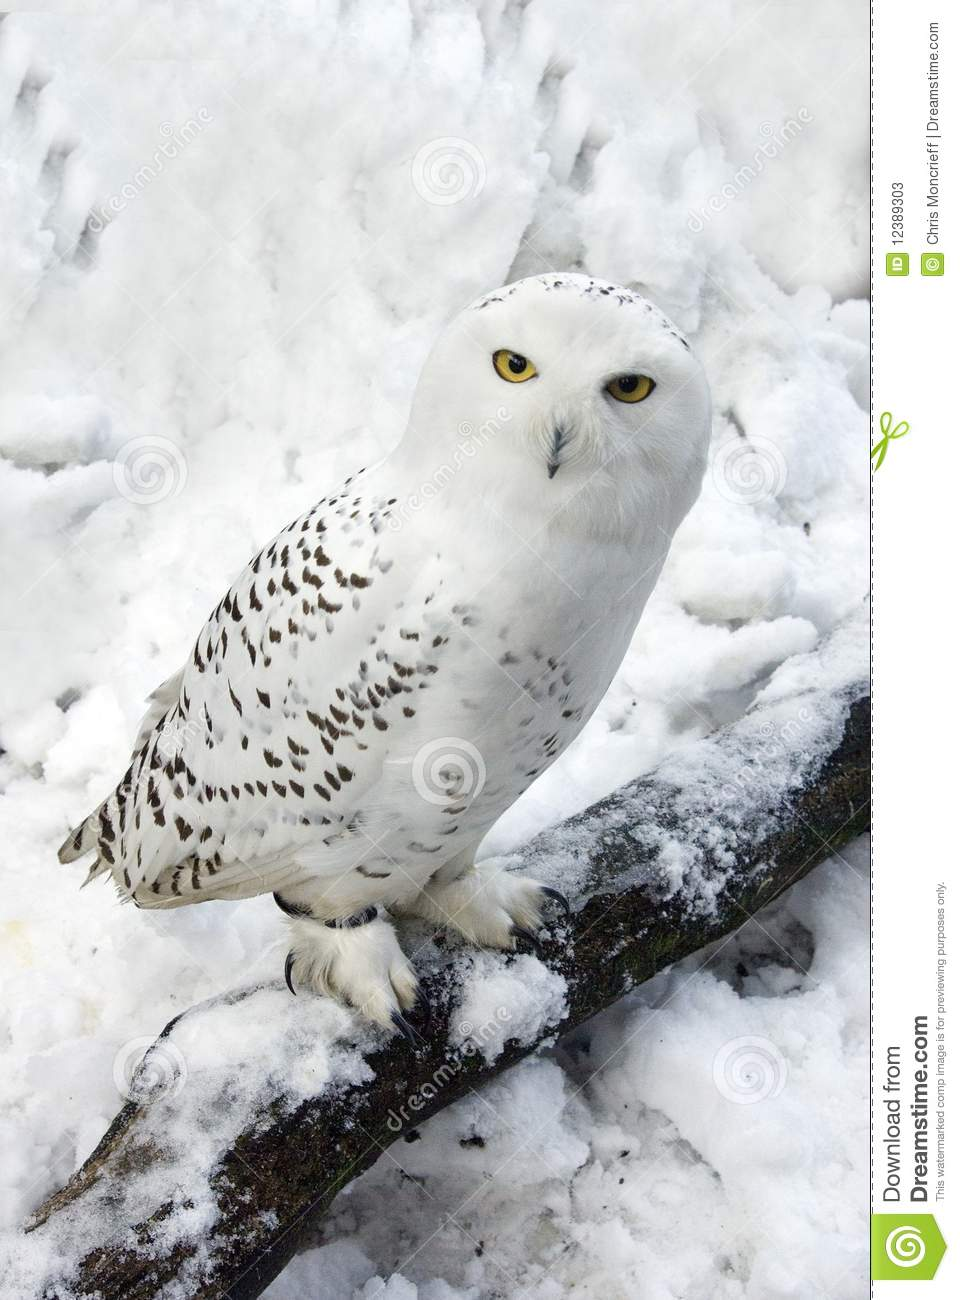 Snowy Owl In Snow Stock Image Image Of Perches Chick